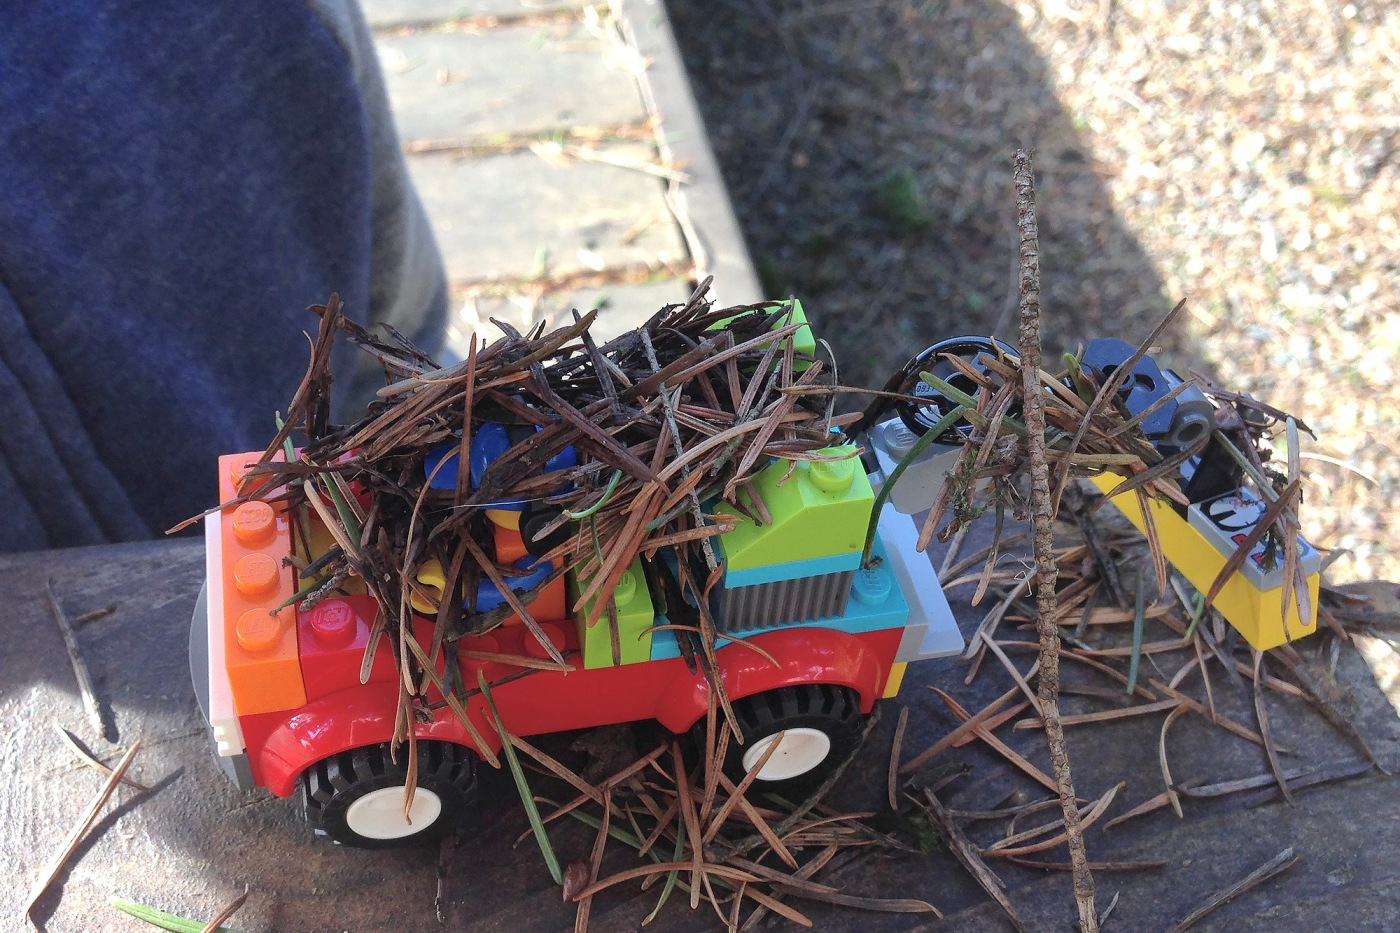 Lego Truck with many pine needles